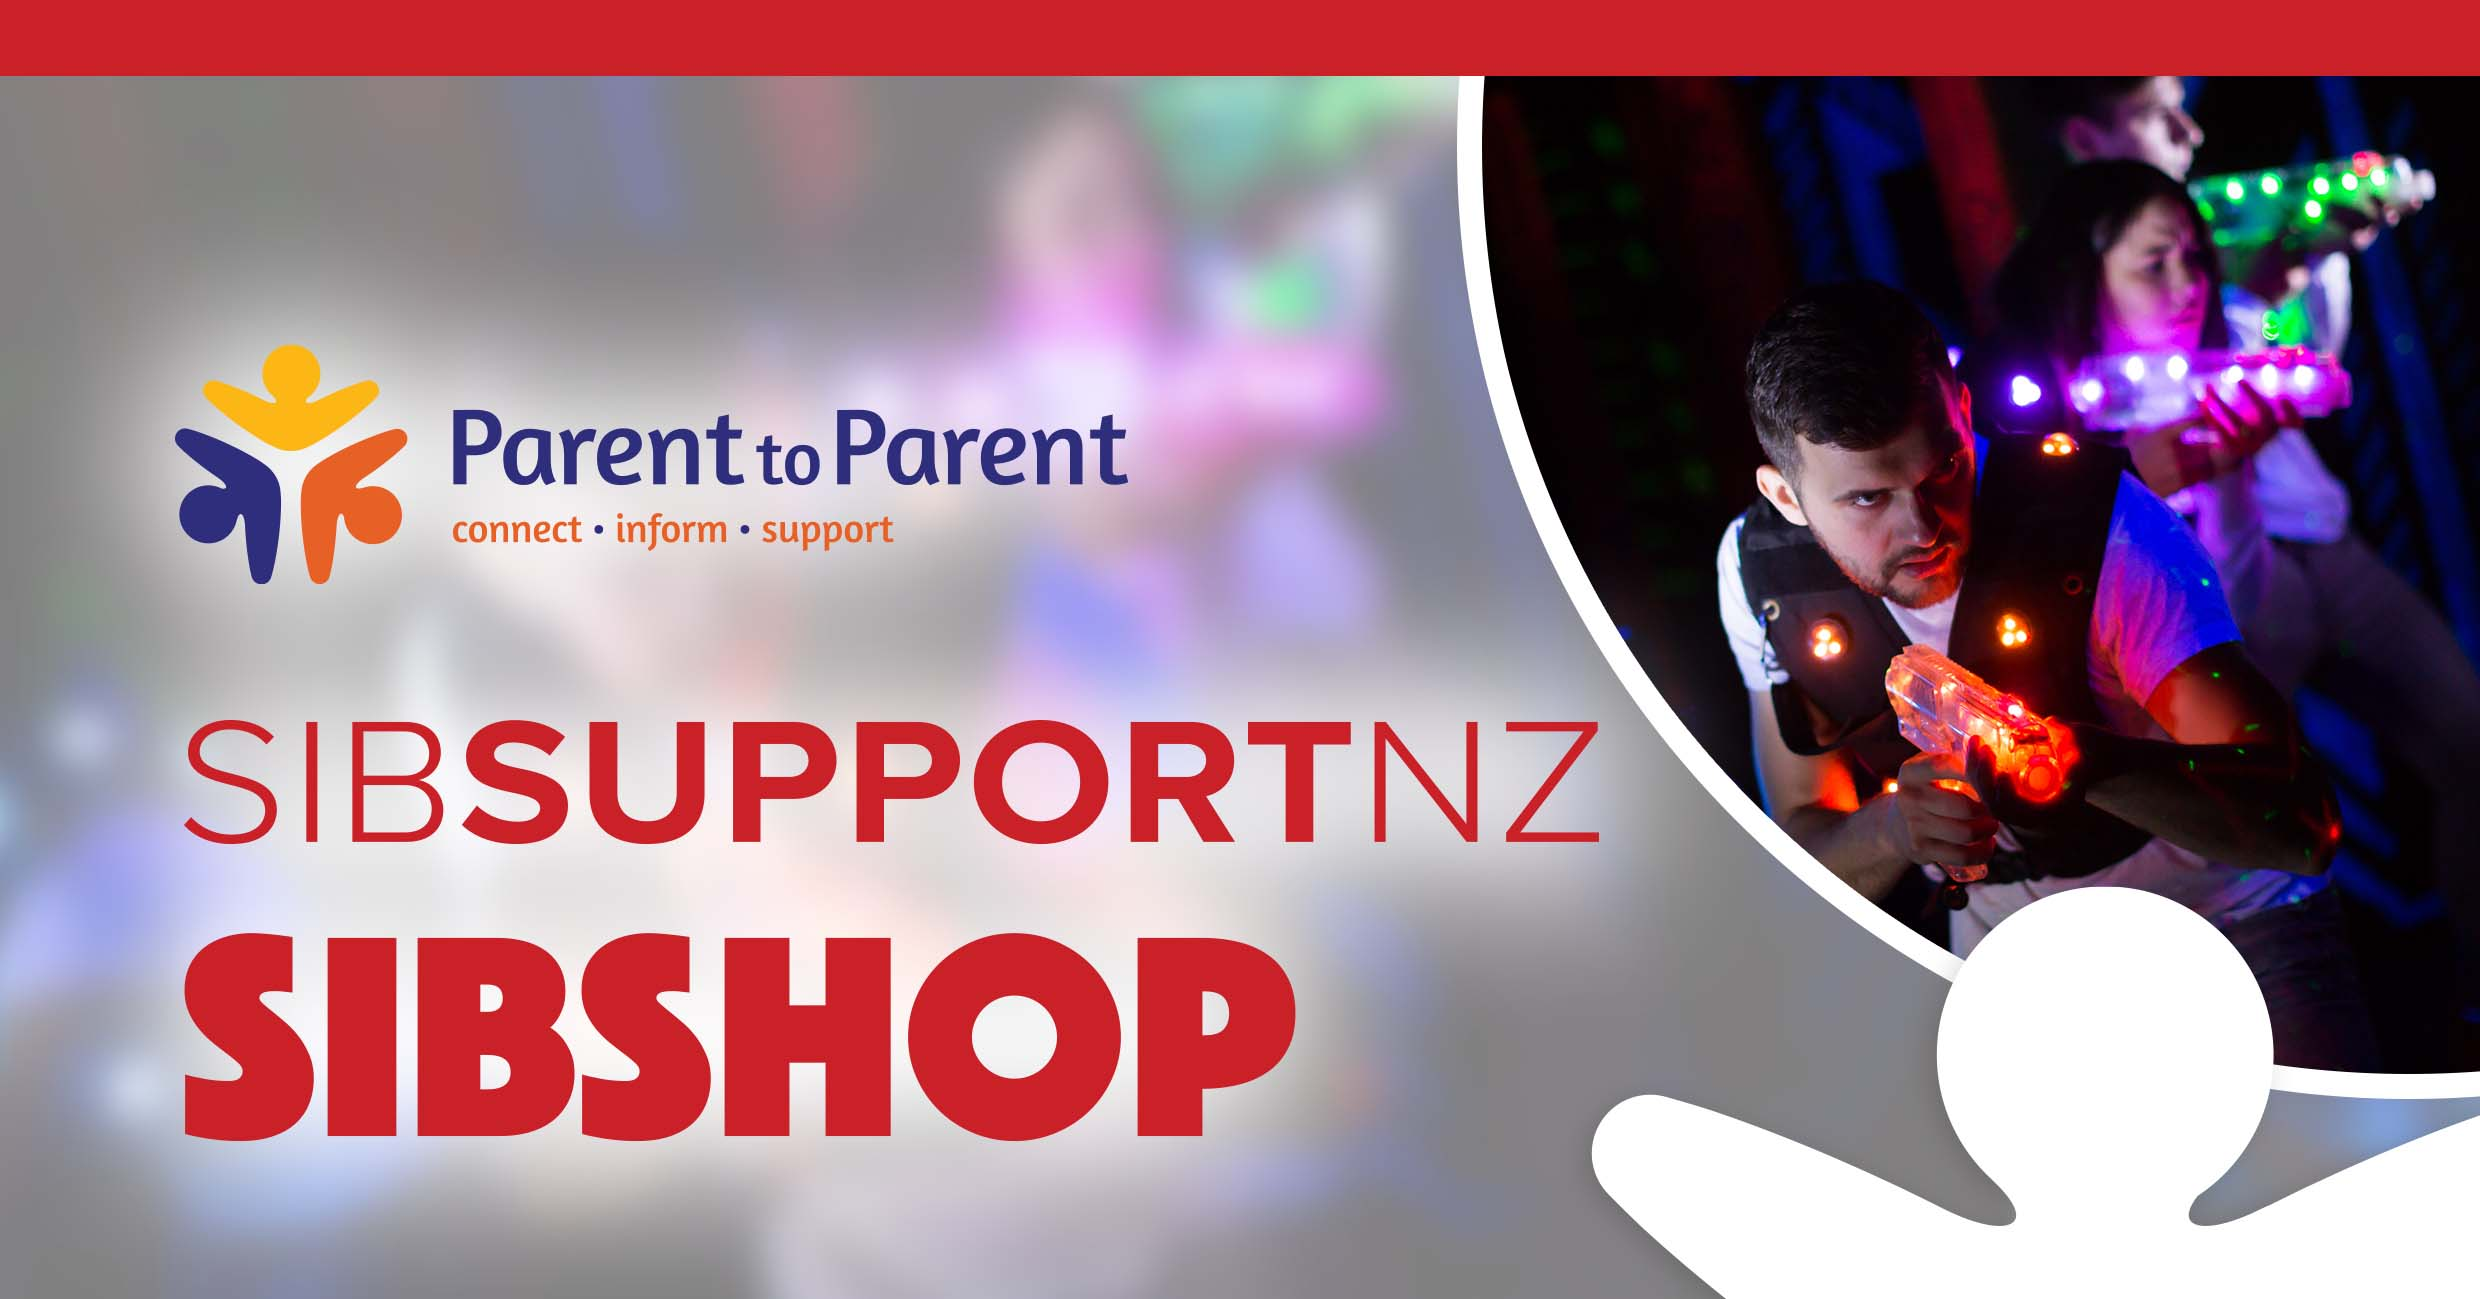 Parent to Parent NZ presents: SibSupport NZ SibShop with Laser Tag